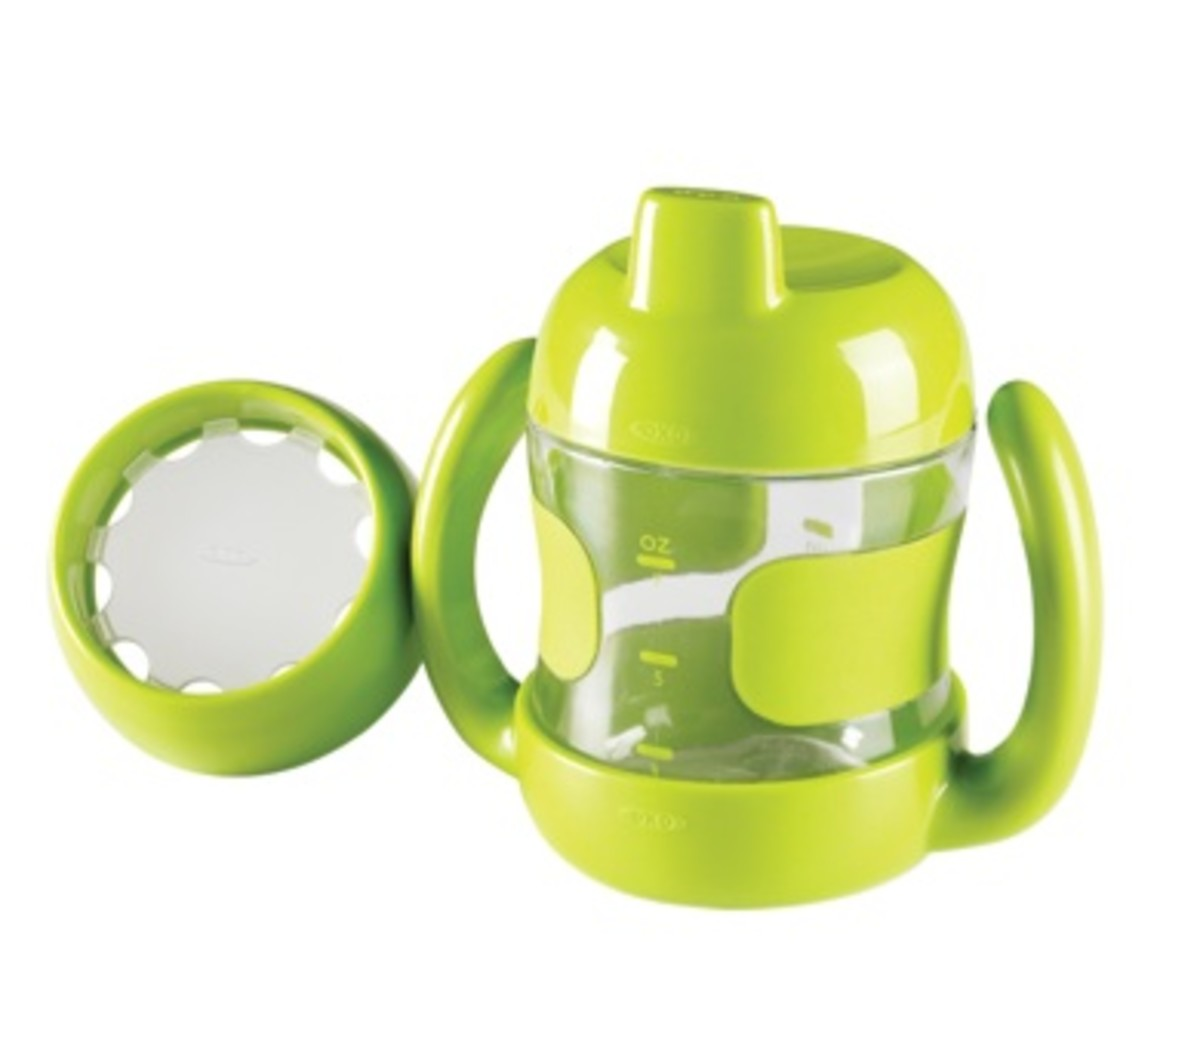 sipppy cup